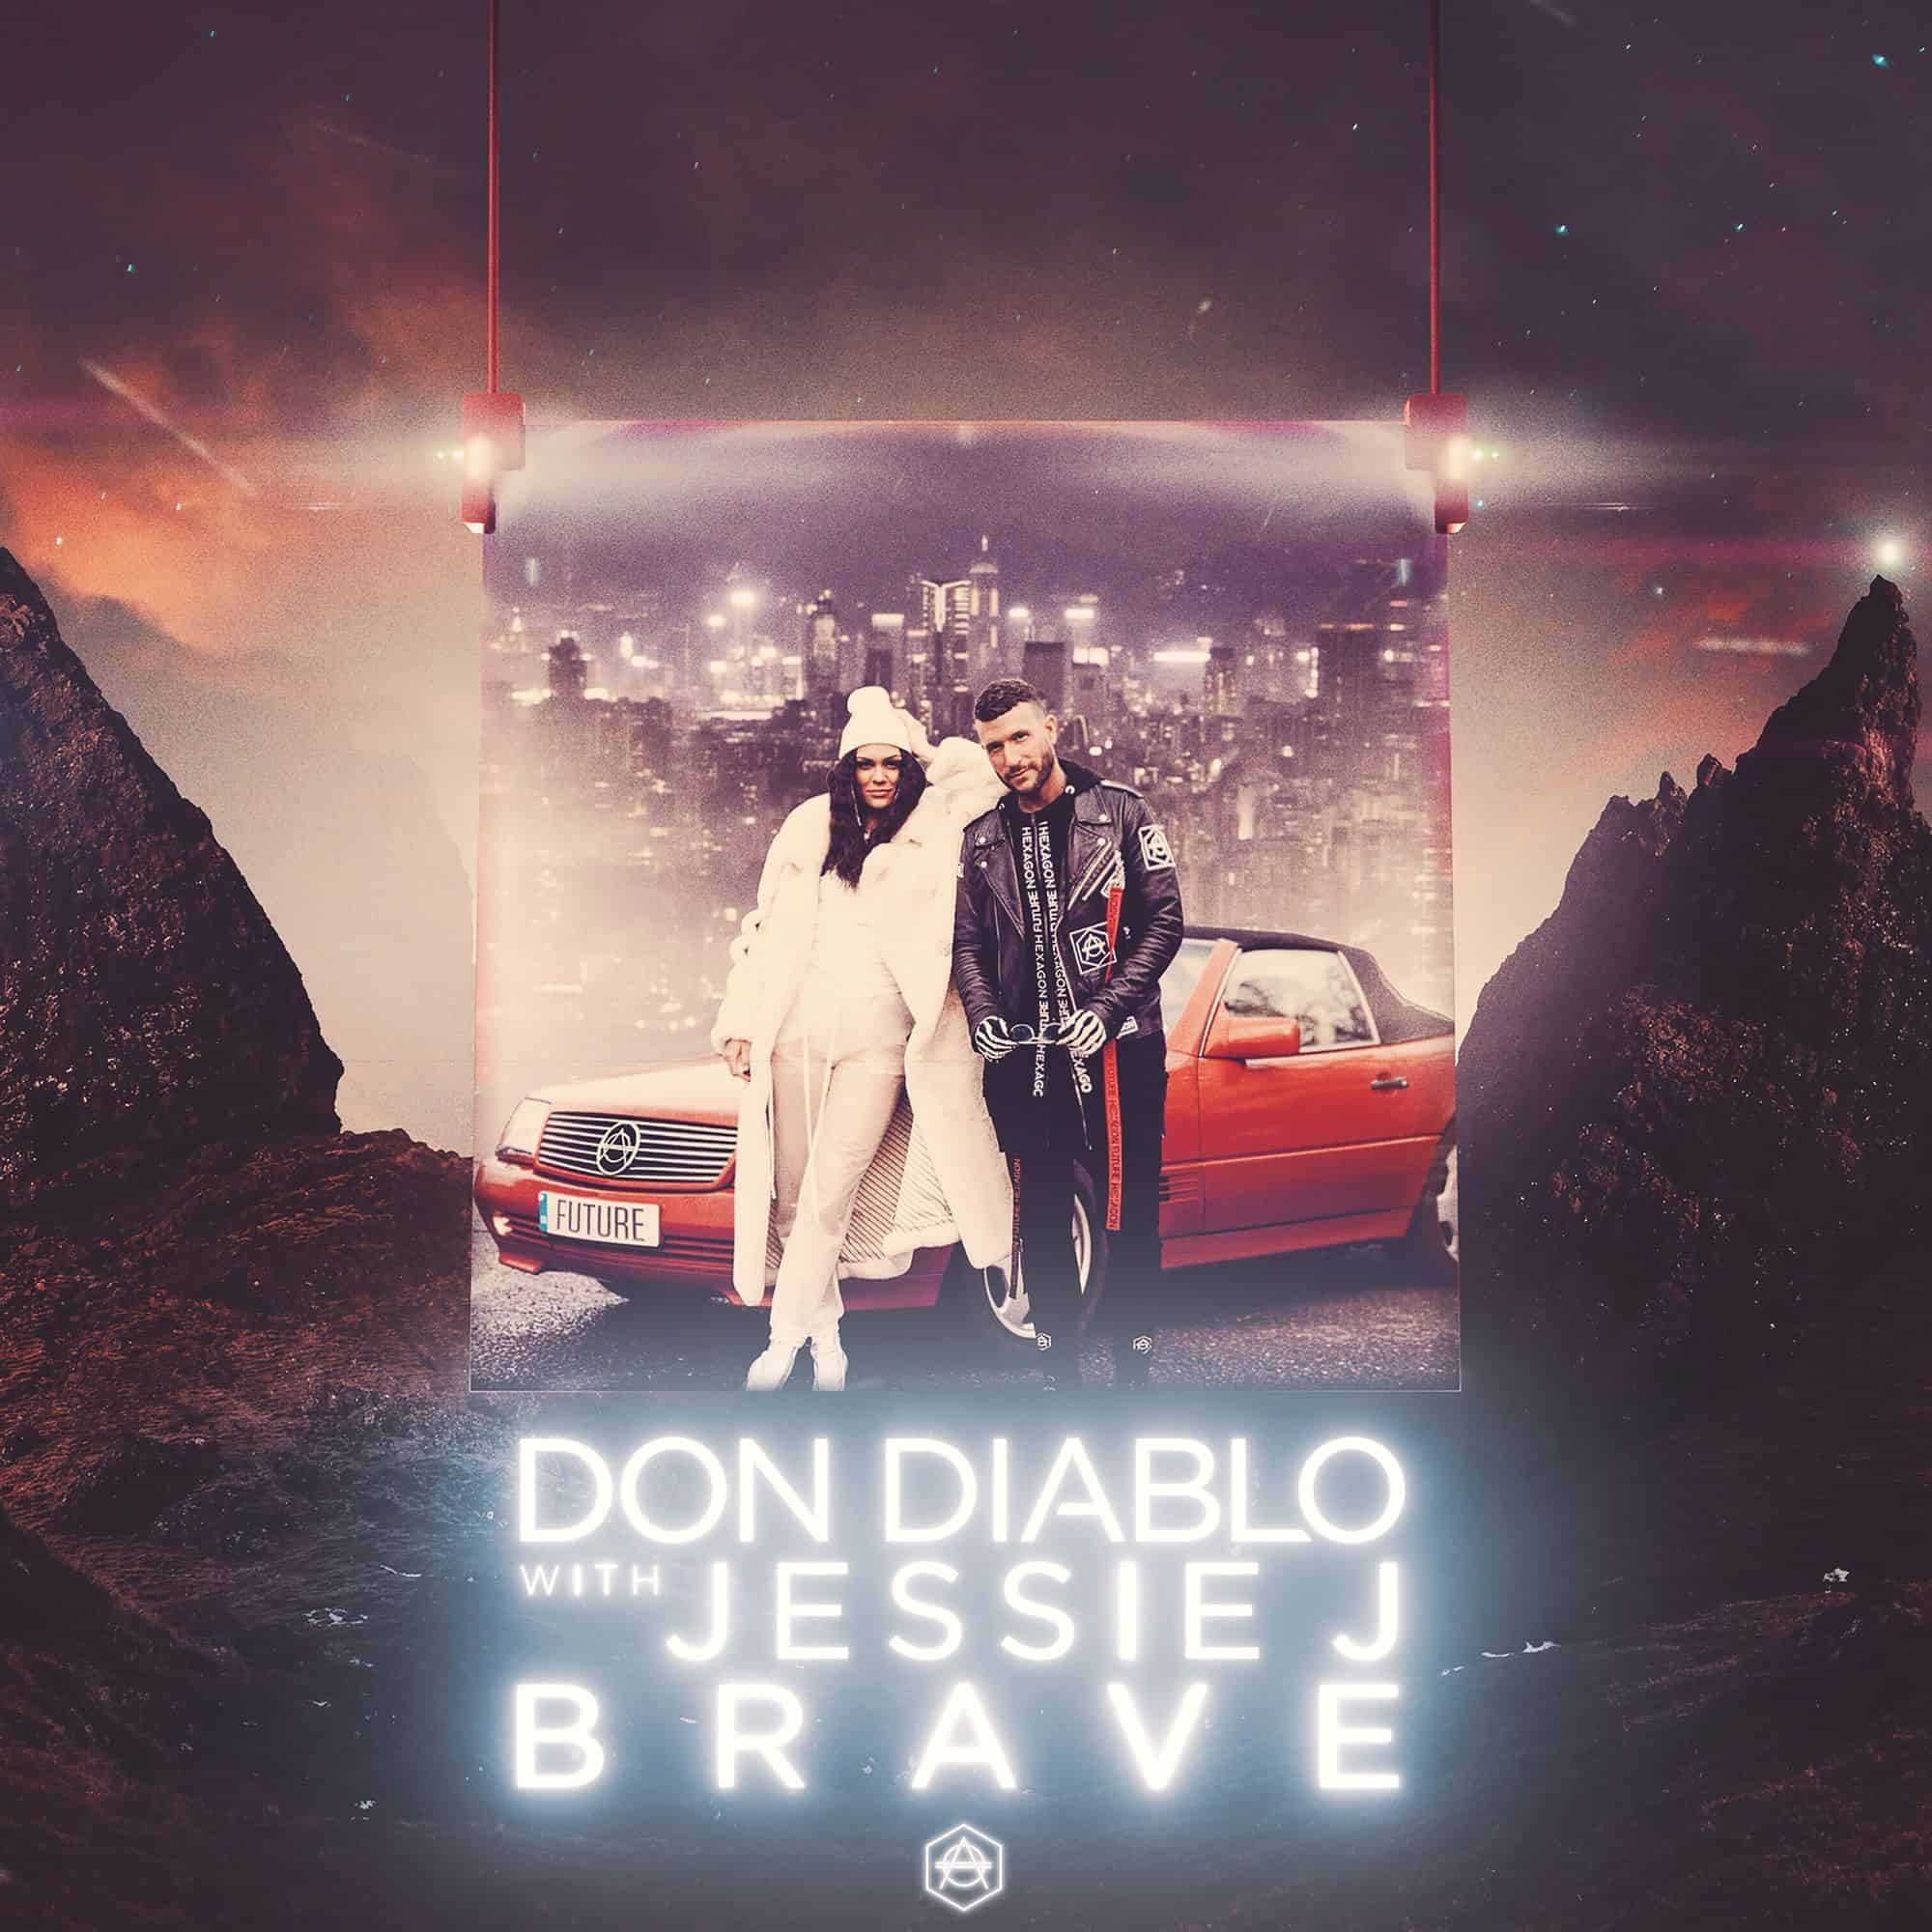 "Don Diablo Joins Forces With Jessie J To Release Courageous New Single ""BRAVE"""